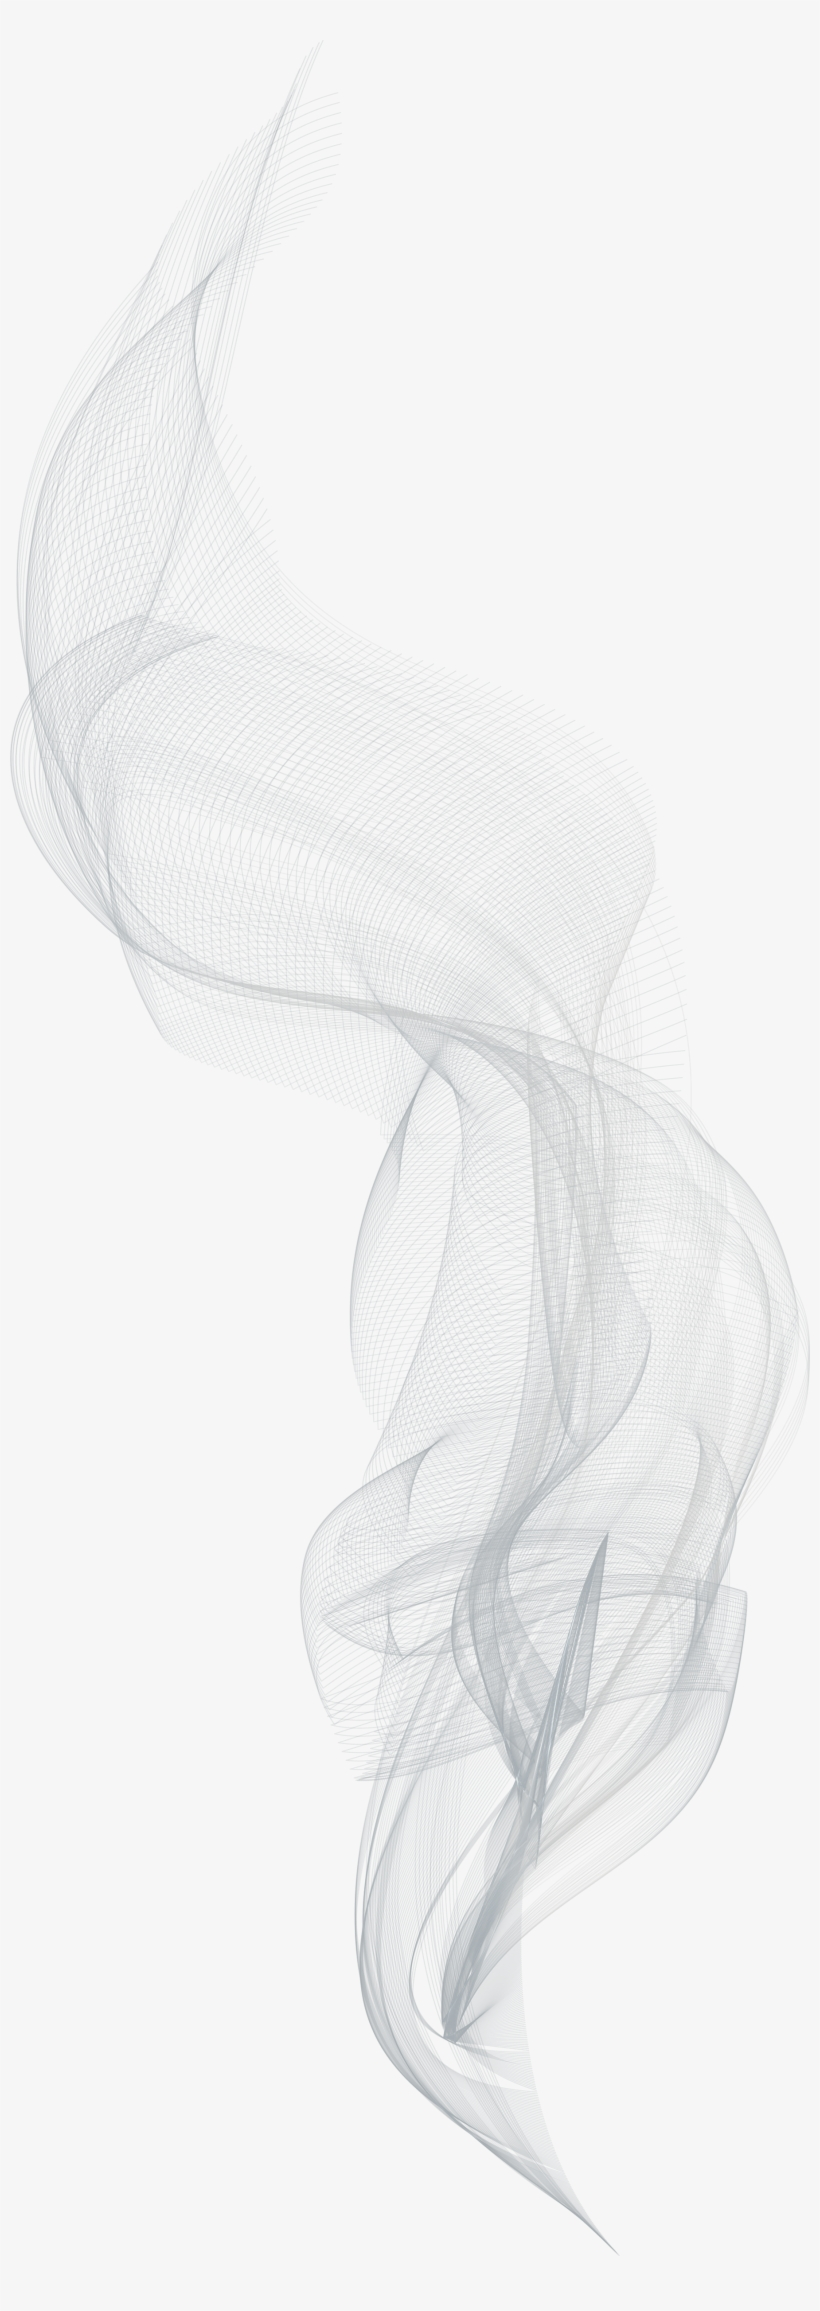 White Smoke Png Transparent Graphic Transparent Library - Hot Tea Smoke Png@pngkey.com